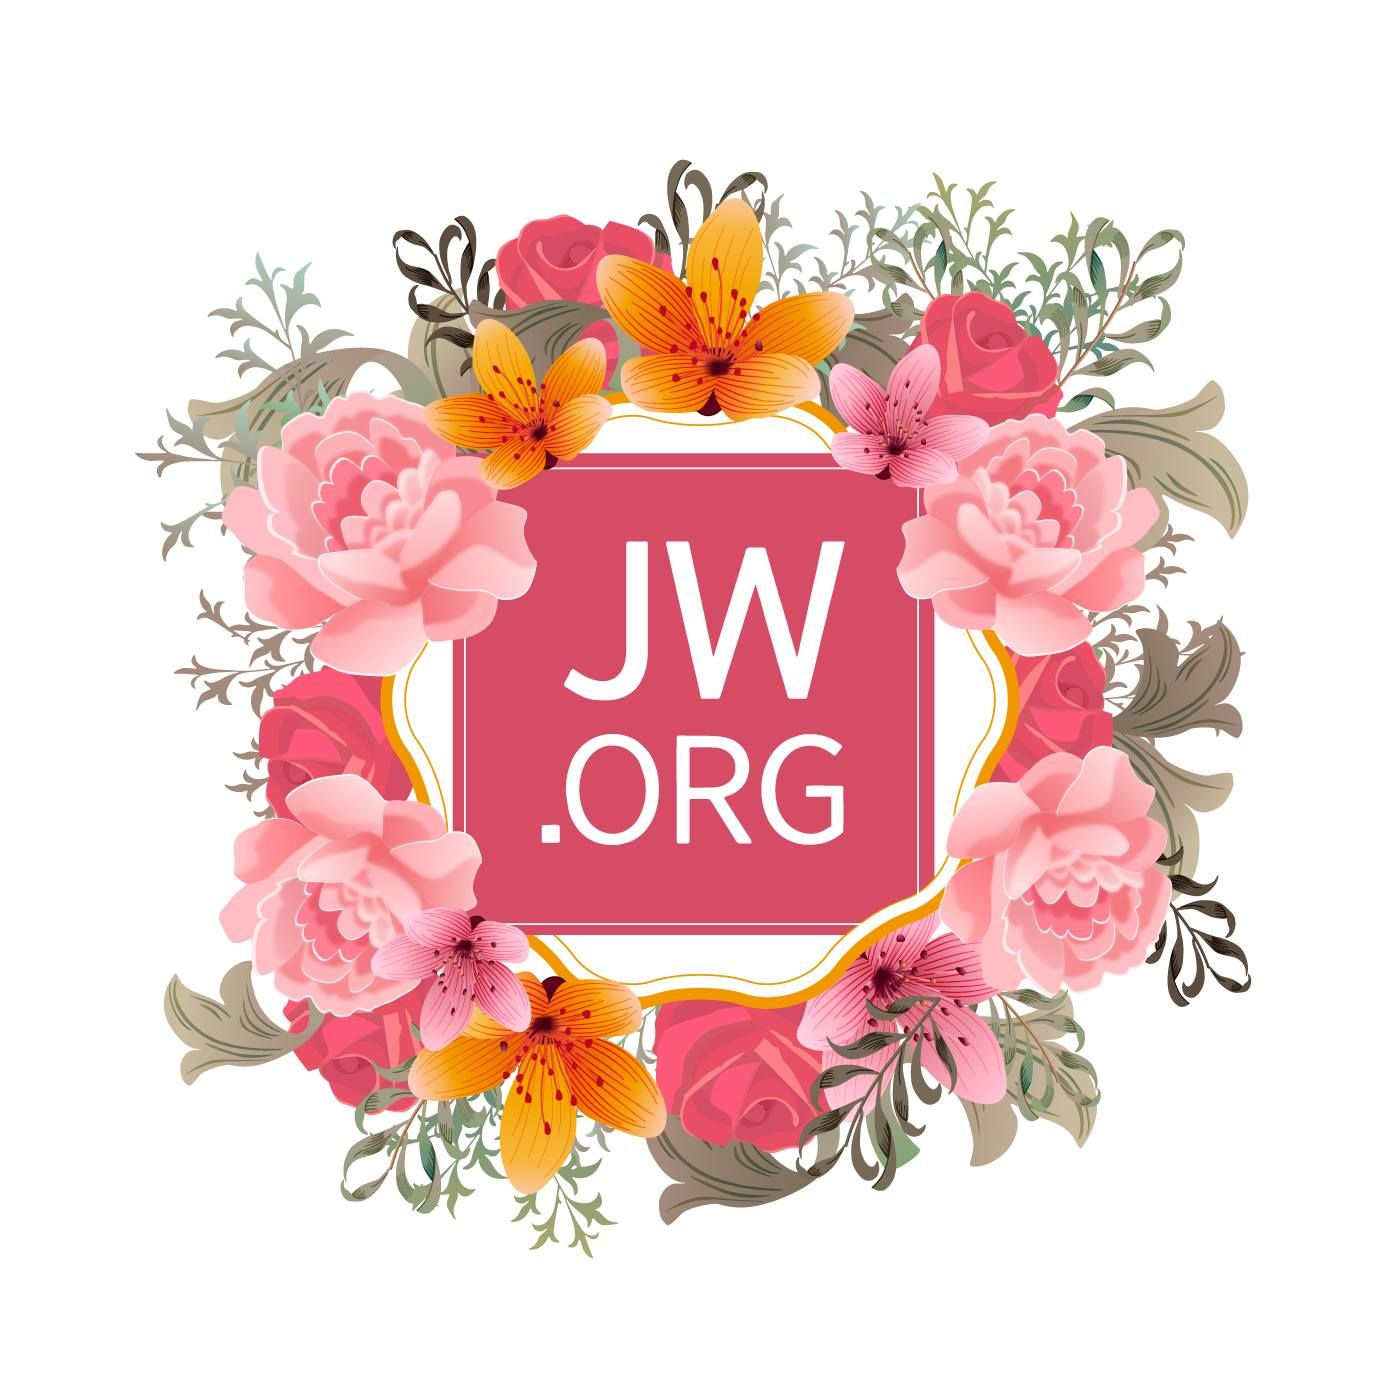 Jw org logo clipart free library JW.ORG COVERS … | Jehovah\'s Witnesses | Jehov… free library